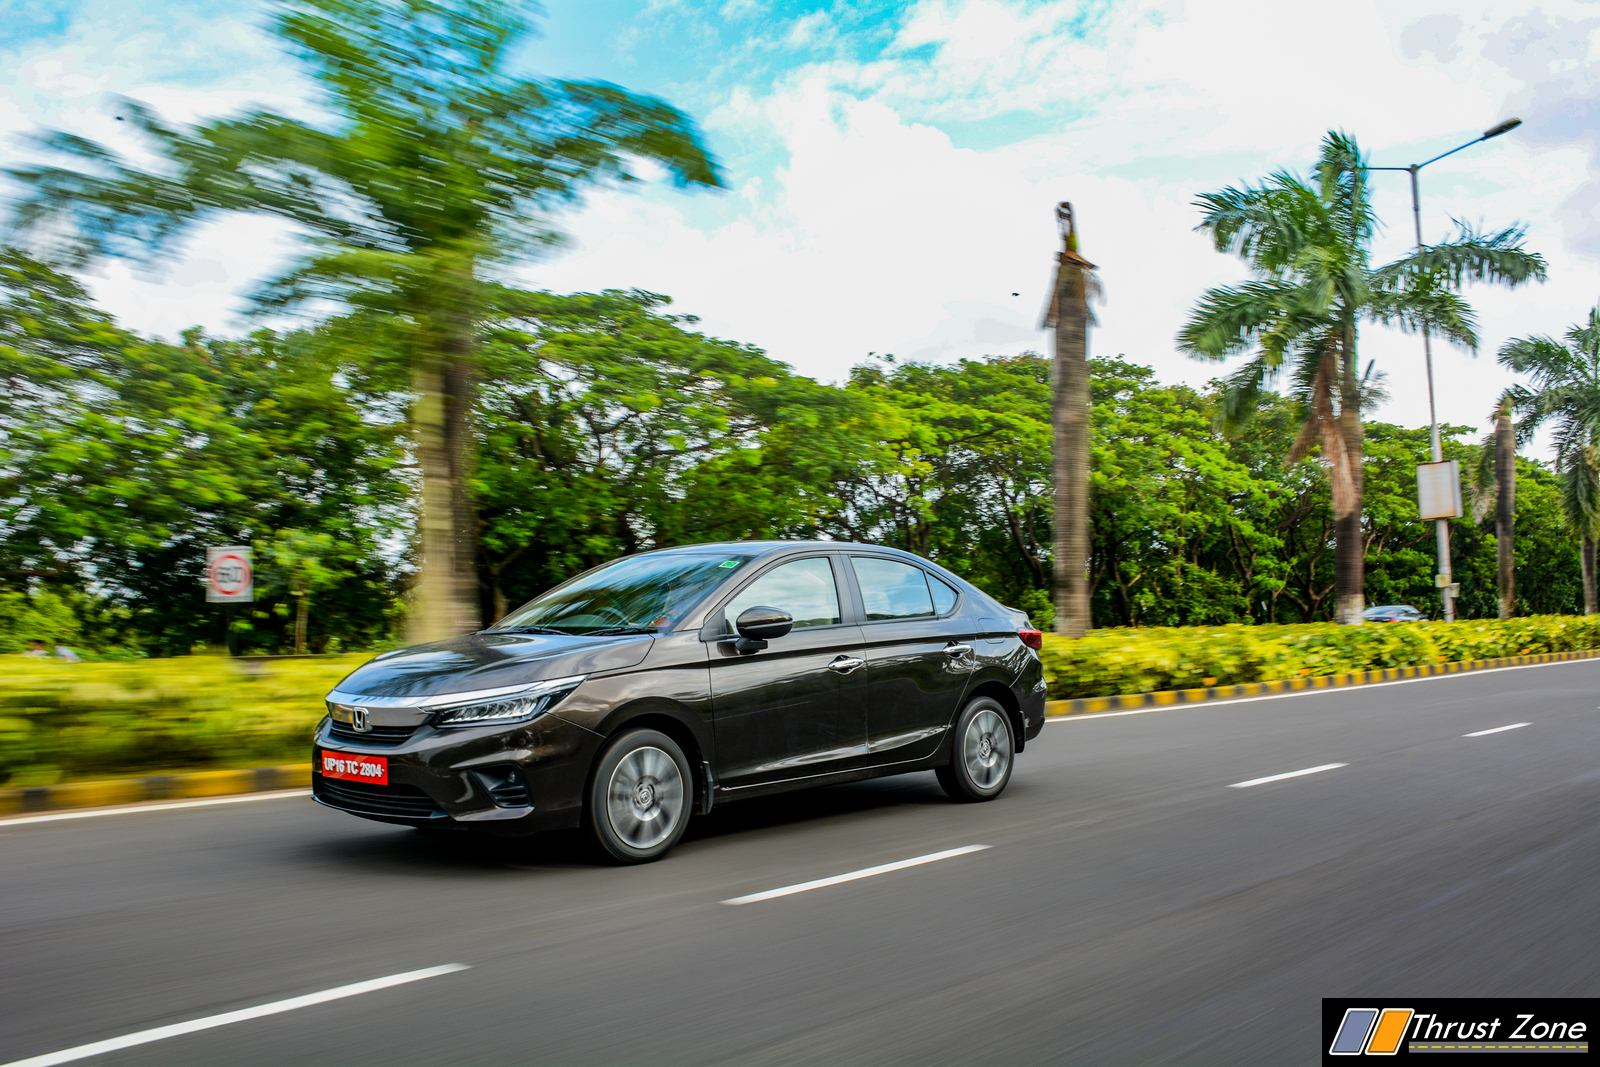 2020-Honda-City-Road-Test-Review-3